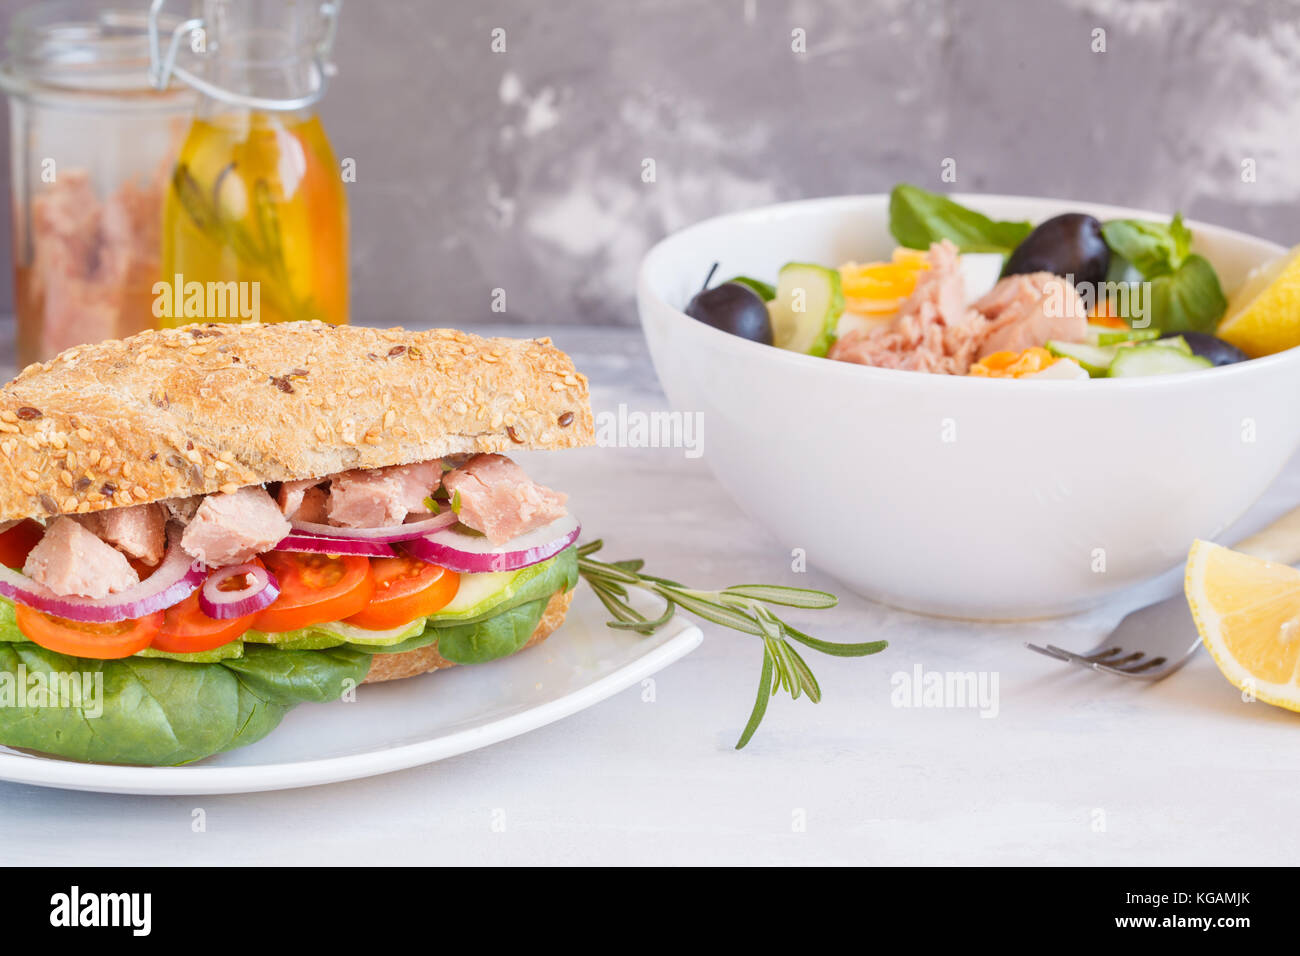 Tuna sandwich cucumber stock photos tuna sandwich for Tuna and egg sandwich